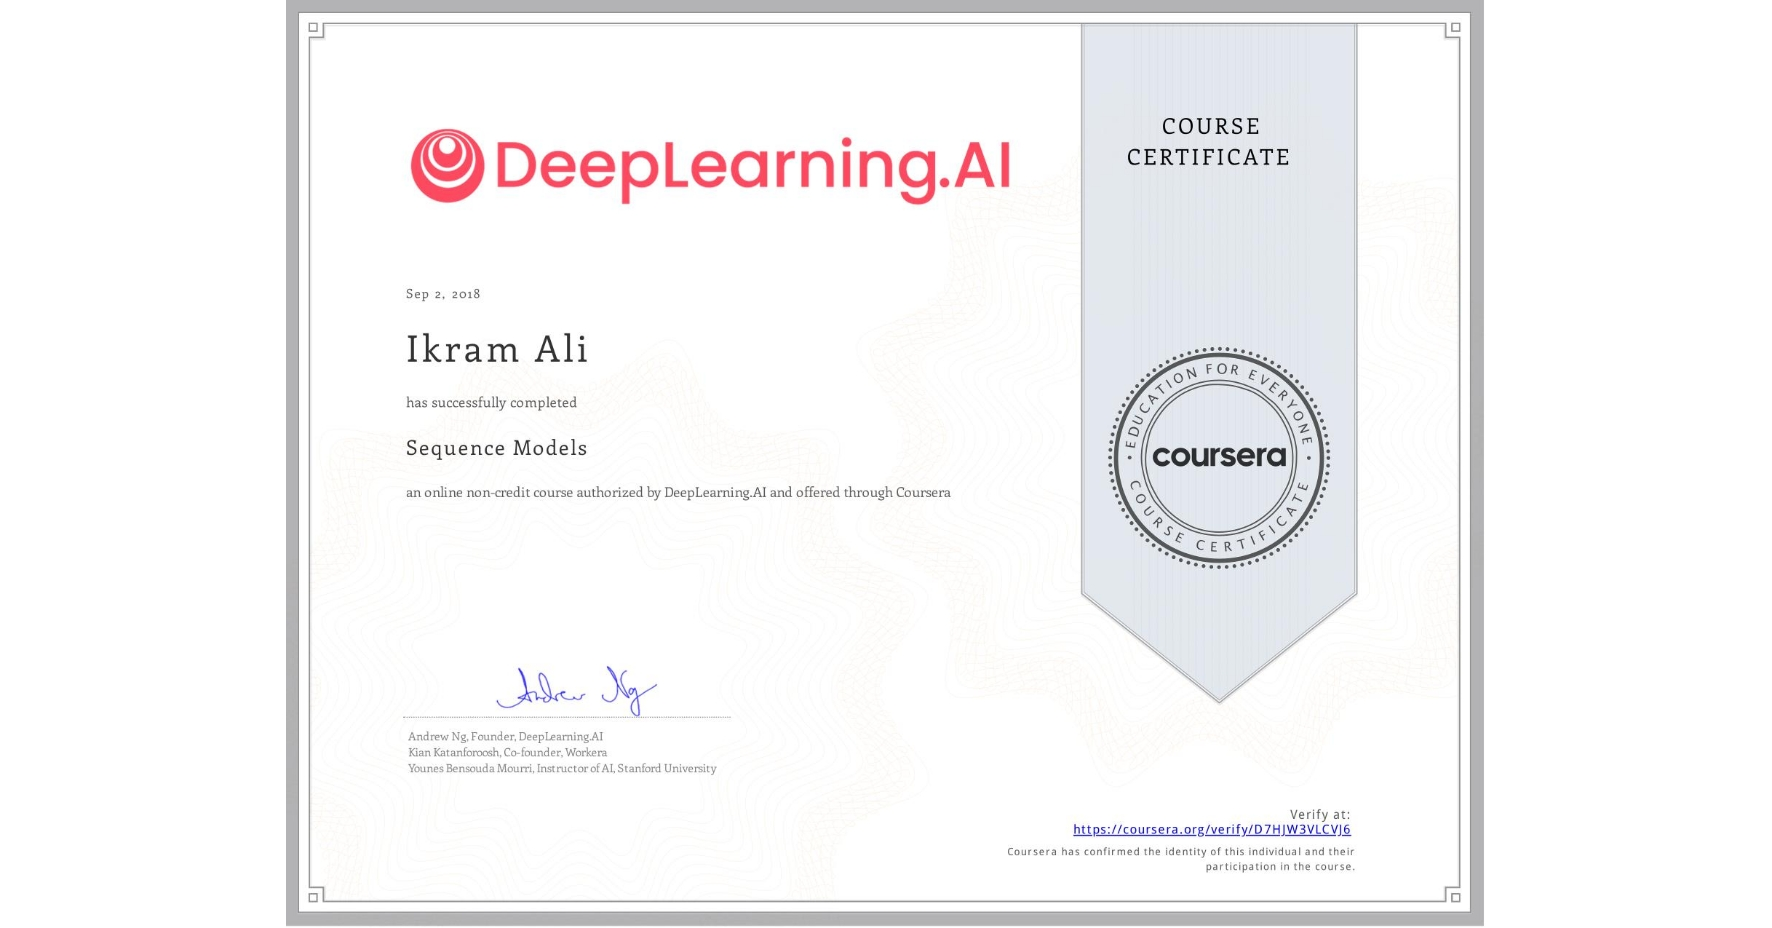 View certificate for Ikram Ali, Sequence Models, an online non-credit course authorized by DeepLearning.AI and offered through Coursera